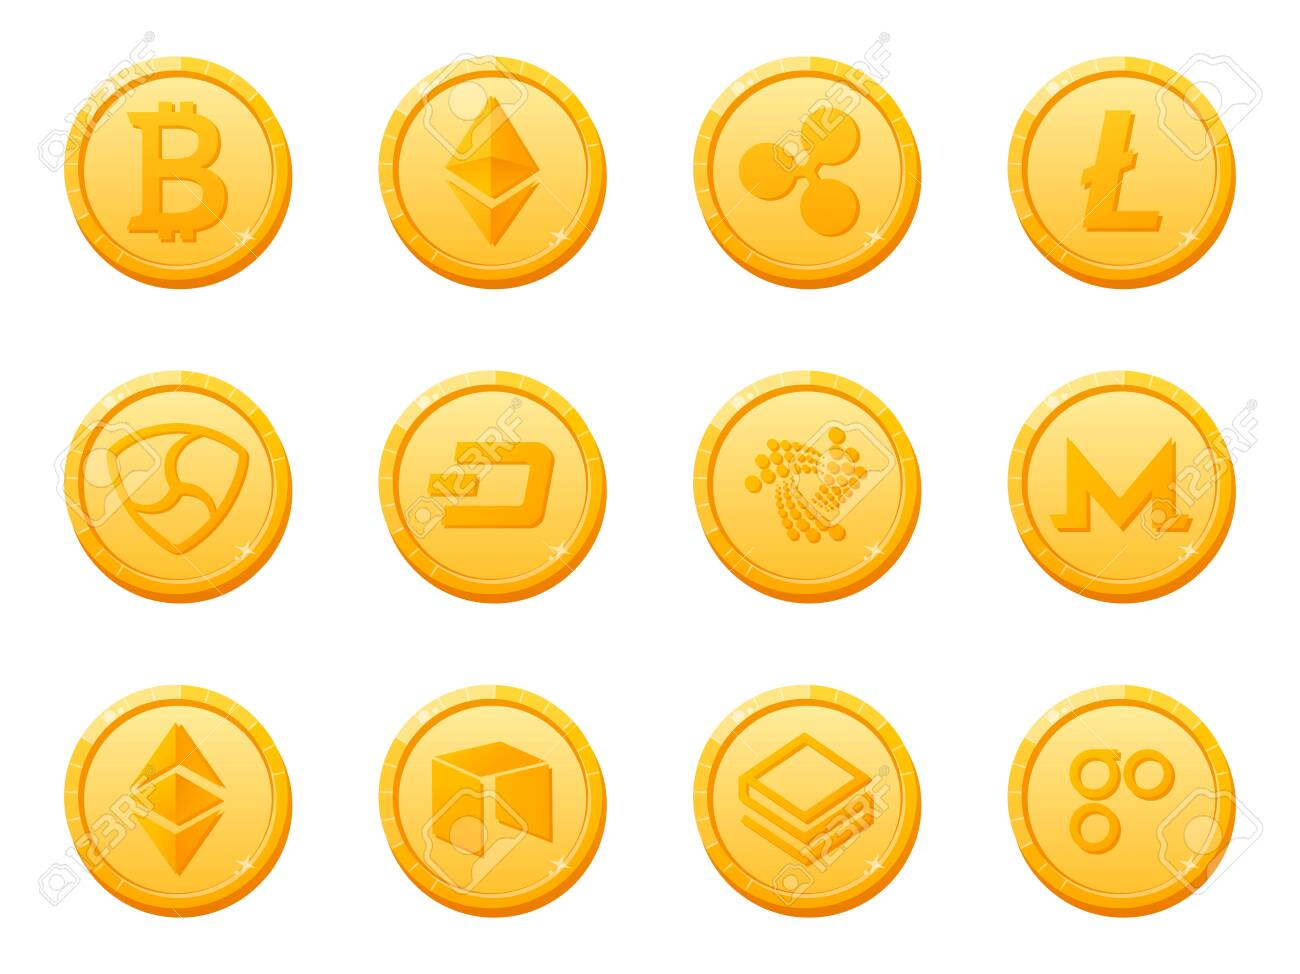 Set of 12 gold coins crypto currency icon. Top digital electronic currency by market capitalization. Bitcoin, Ethereum, Ripple, Litecoin, Dash, NEM, Monero and others. Vector - 154097918